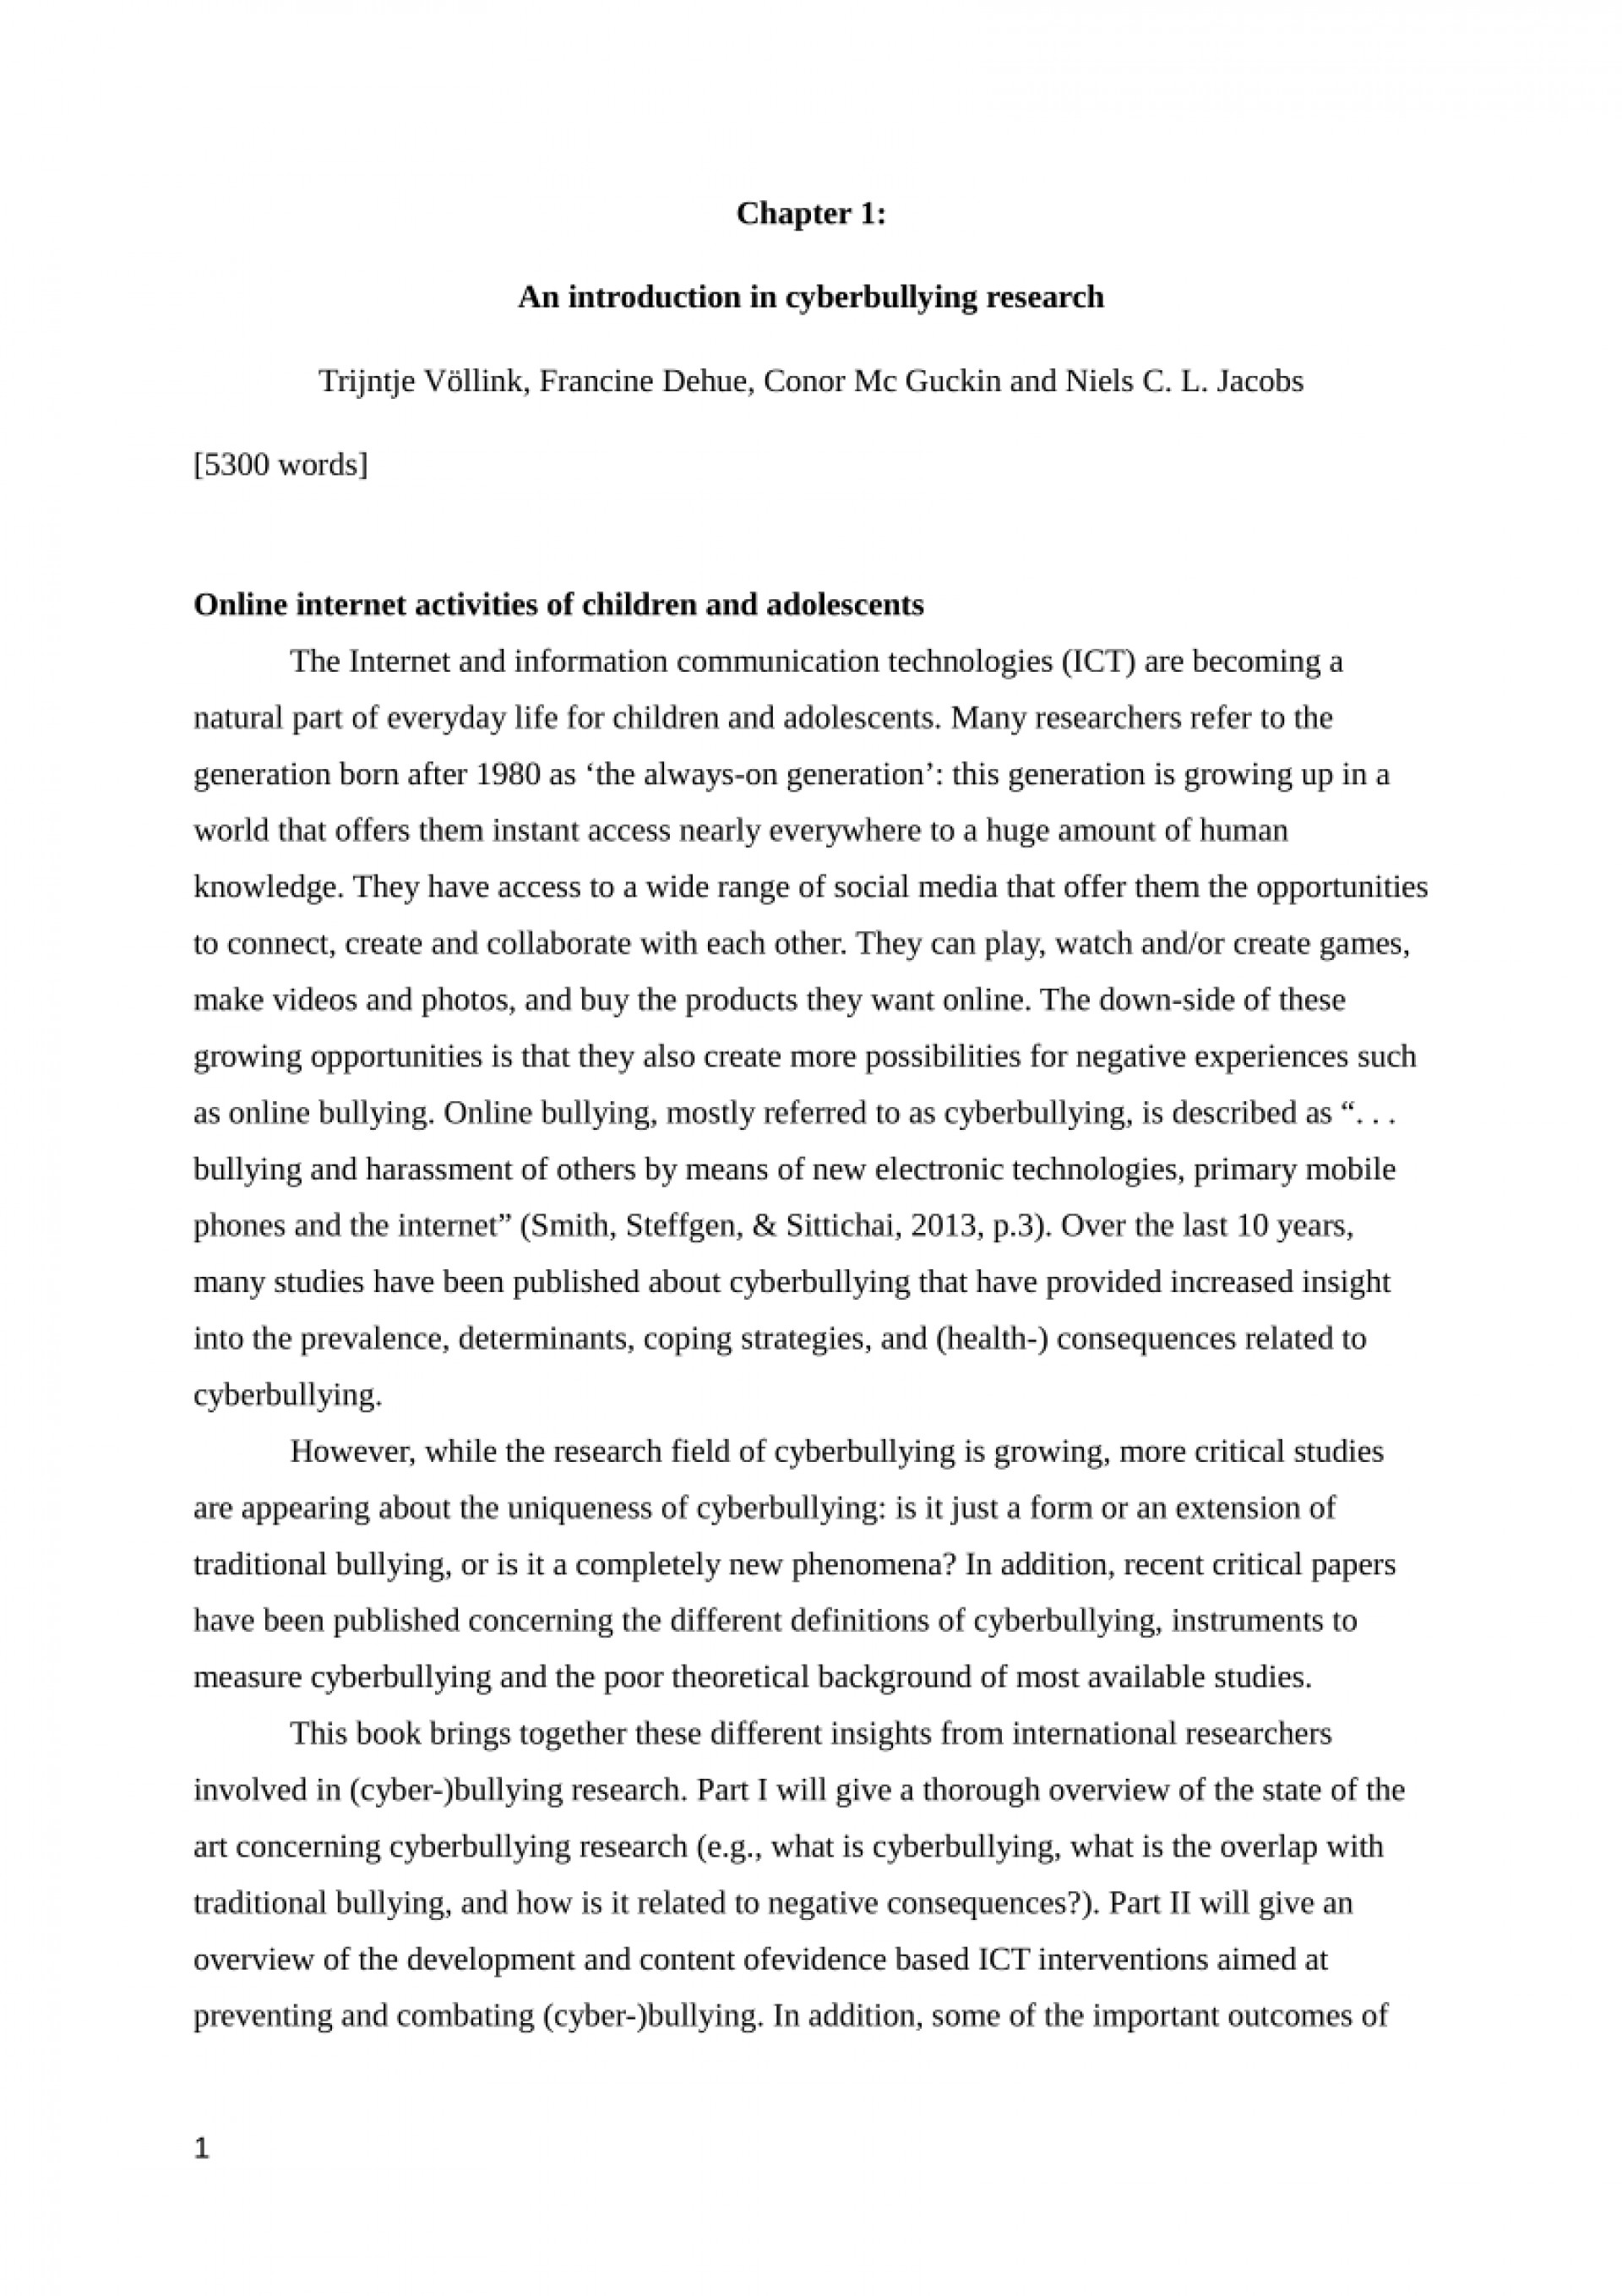 002 Bullying Research Paper Example Pdf Beautiful 1920